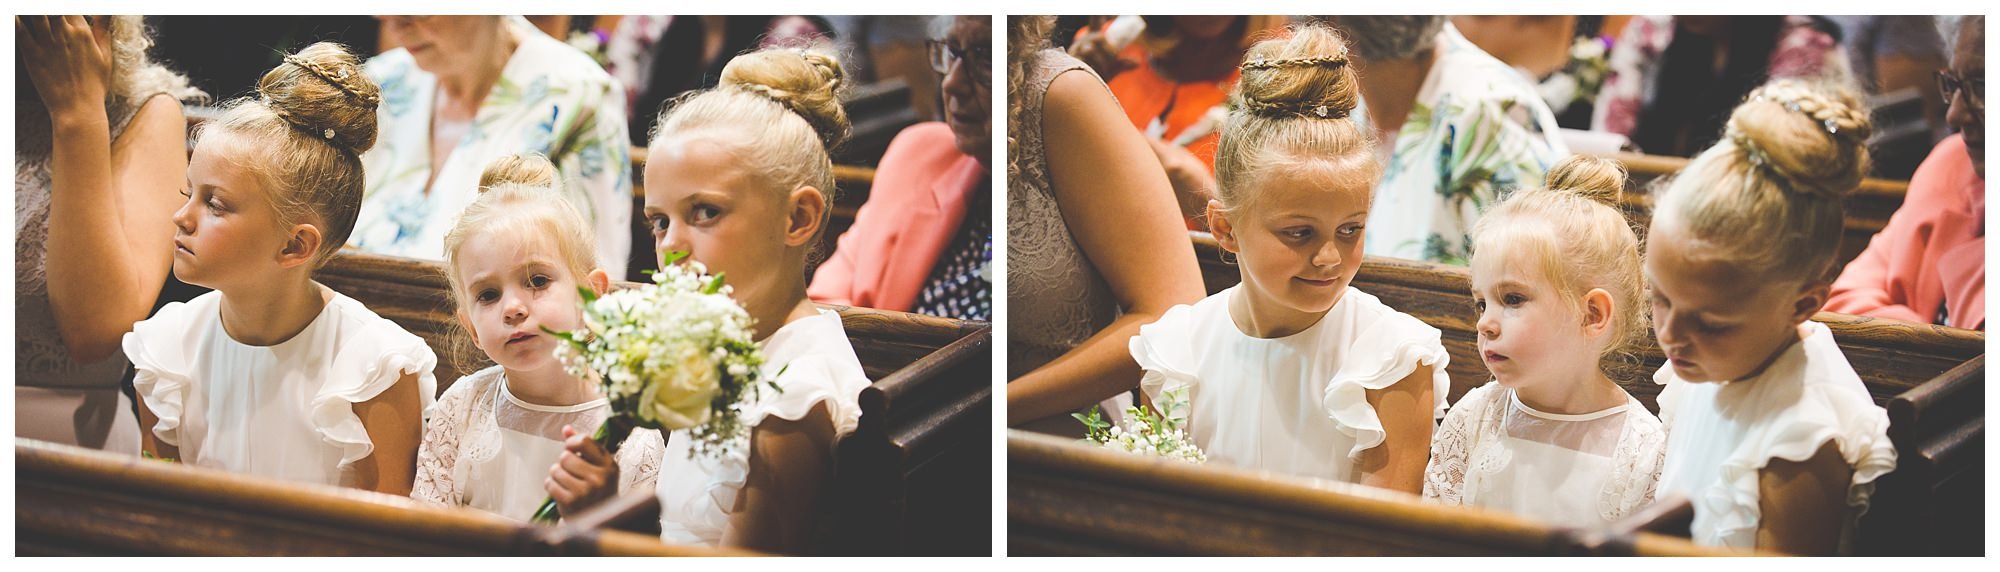 Walton-Hall-Wedding-Photography_0036